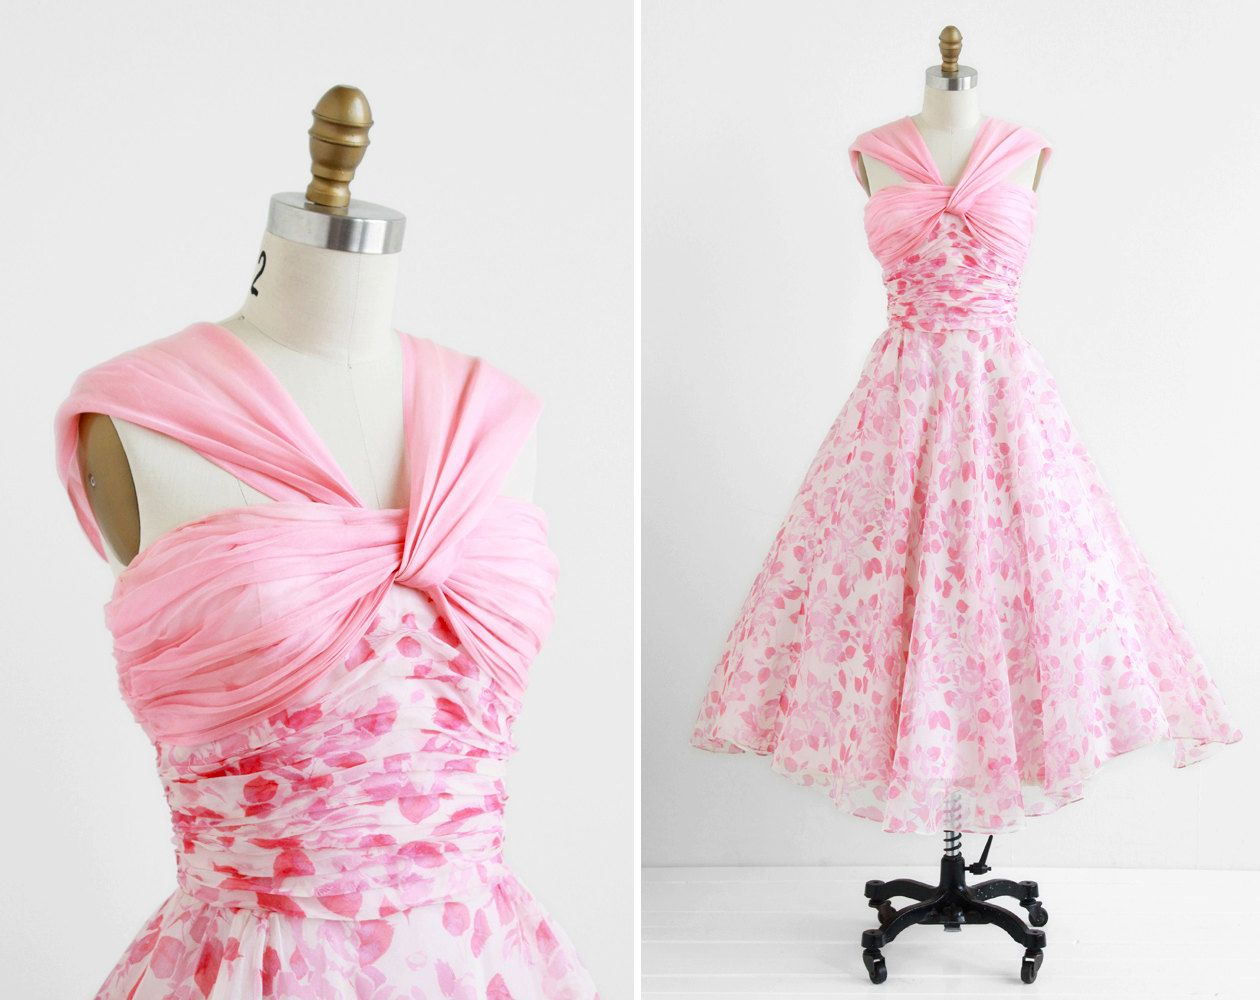 r e s e r v e d - vintage 1950s dress / 50s dress / Pink and White ...